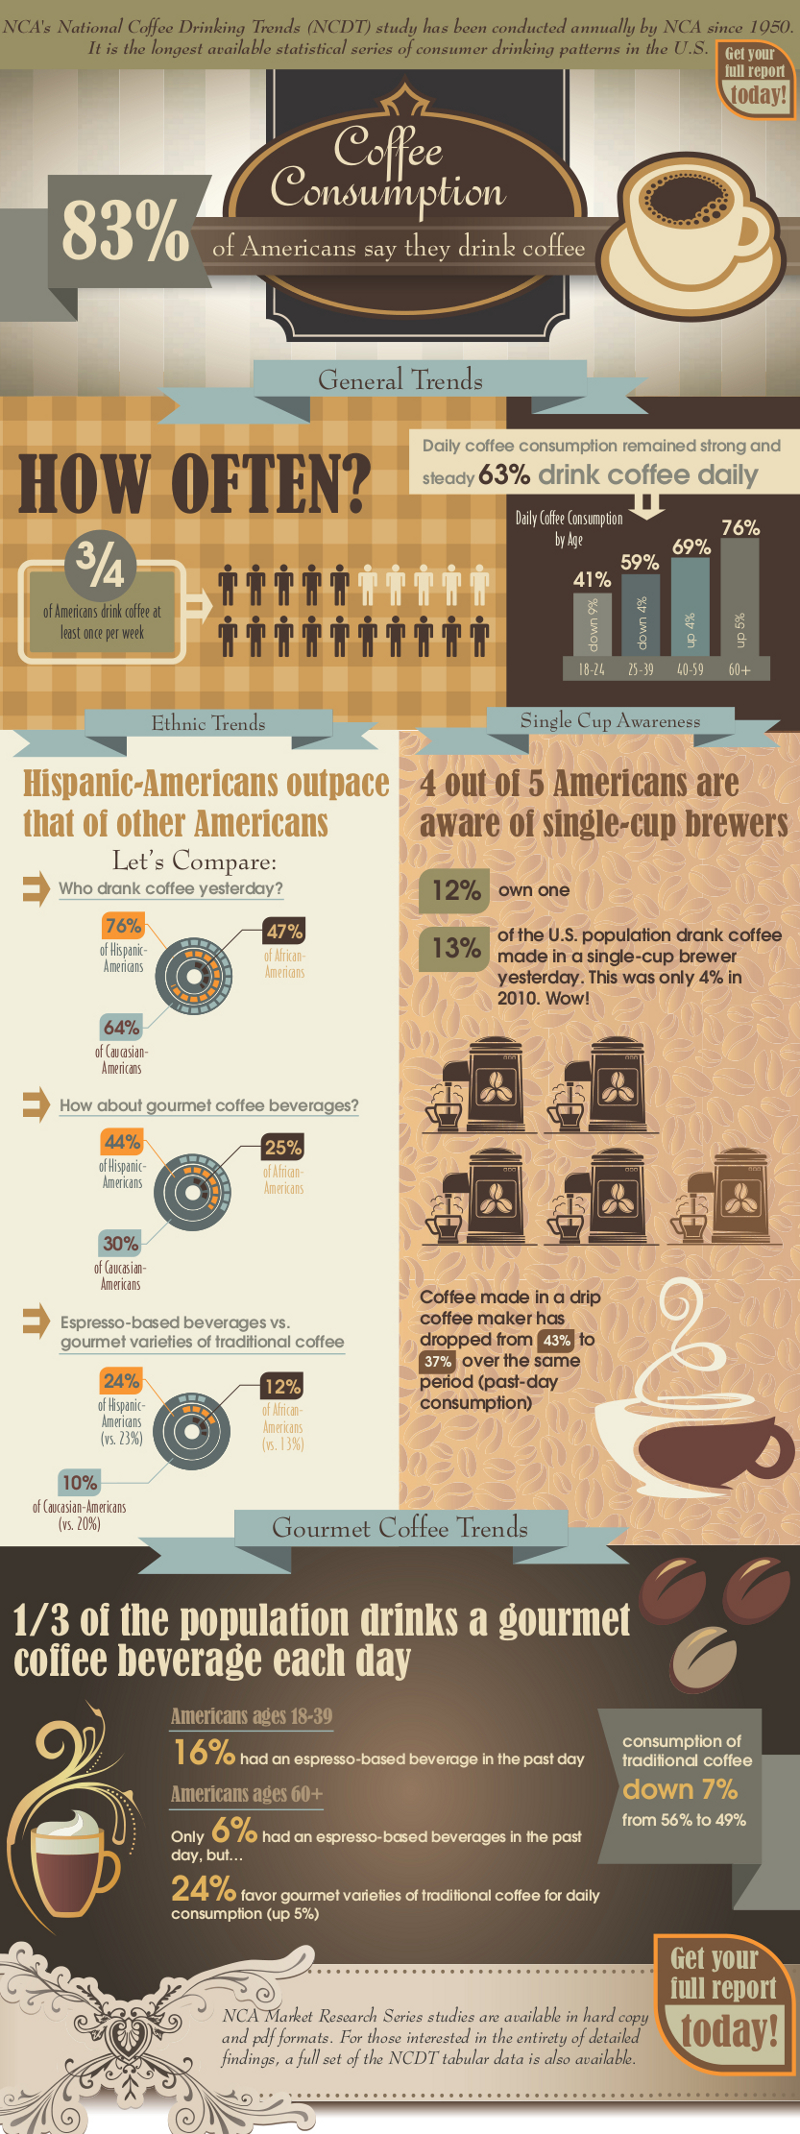 27 Coffee Shop Industry Statistics and Trends